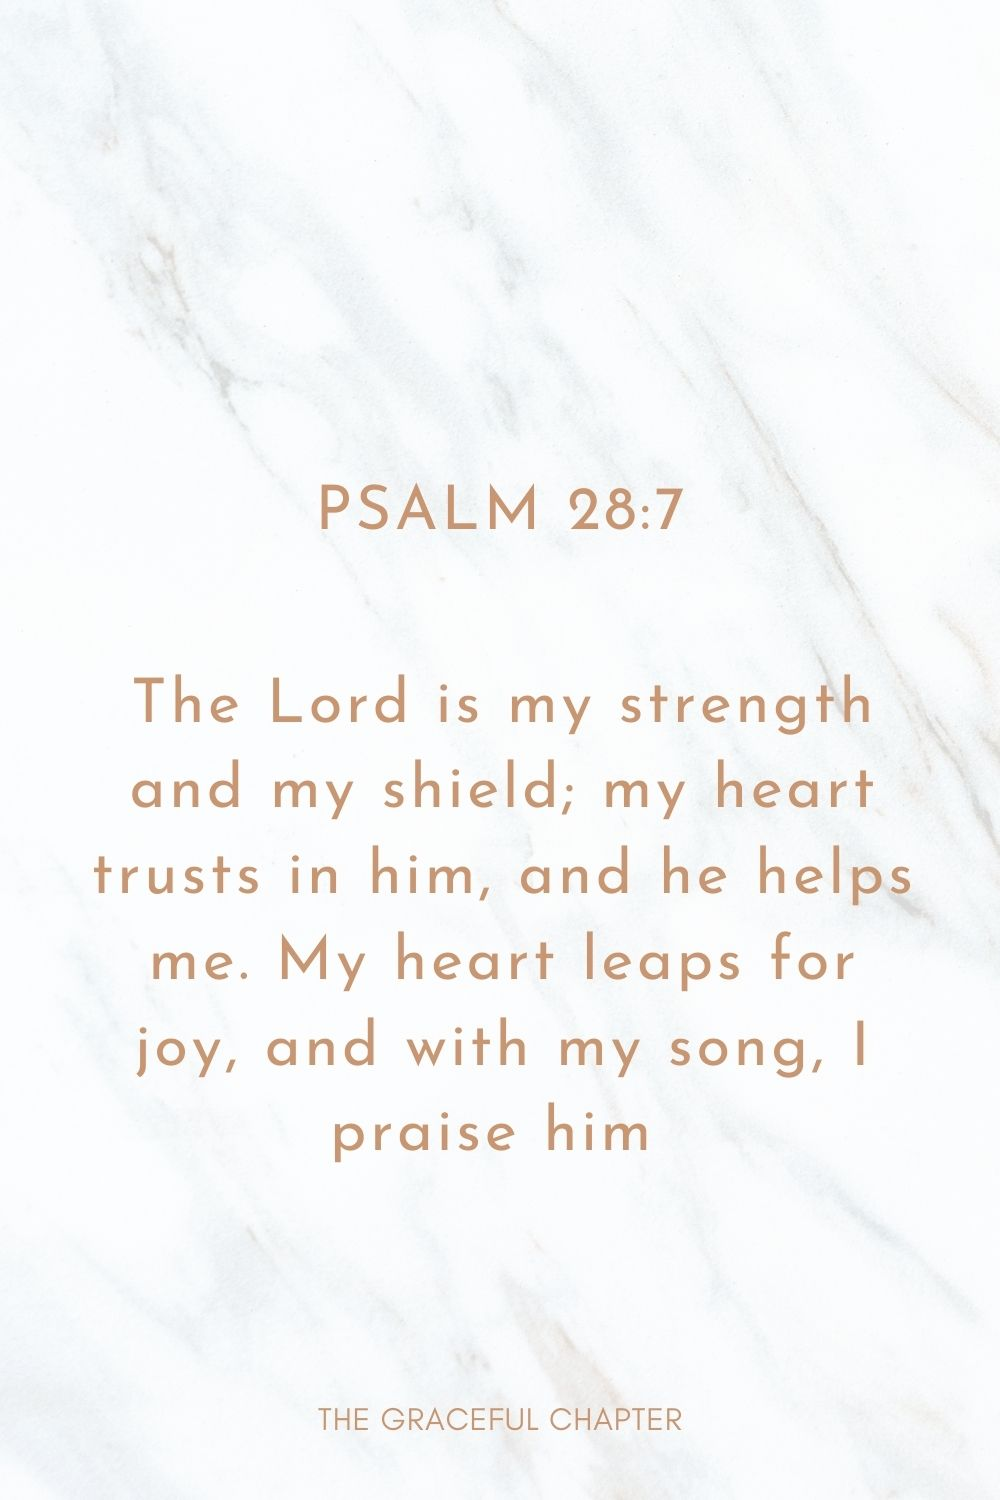 The Lord is my strength and my shield; my heart trusts in him, and he helps me. My heart leaps for joy, and with my song, I praise him  Psalm 28:7